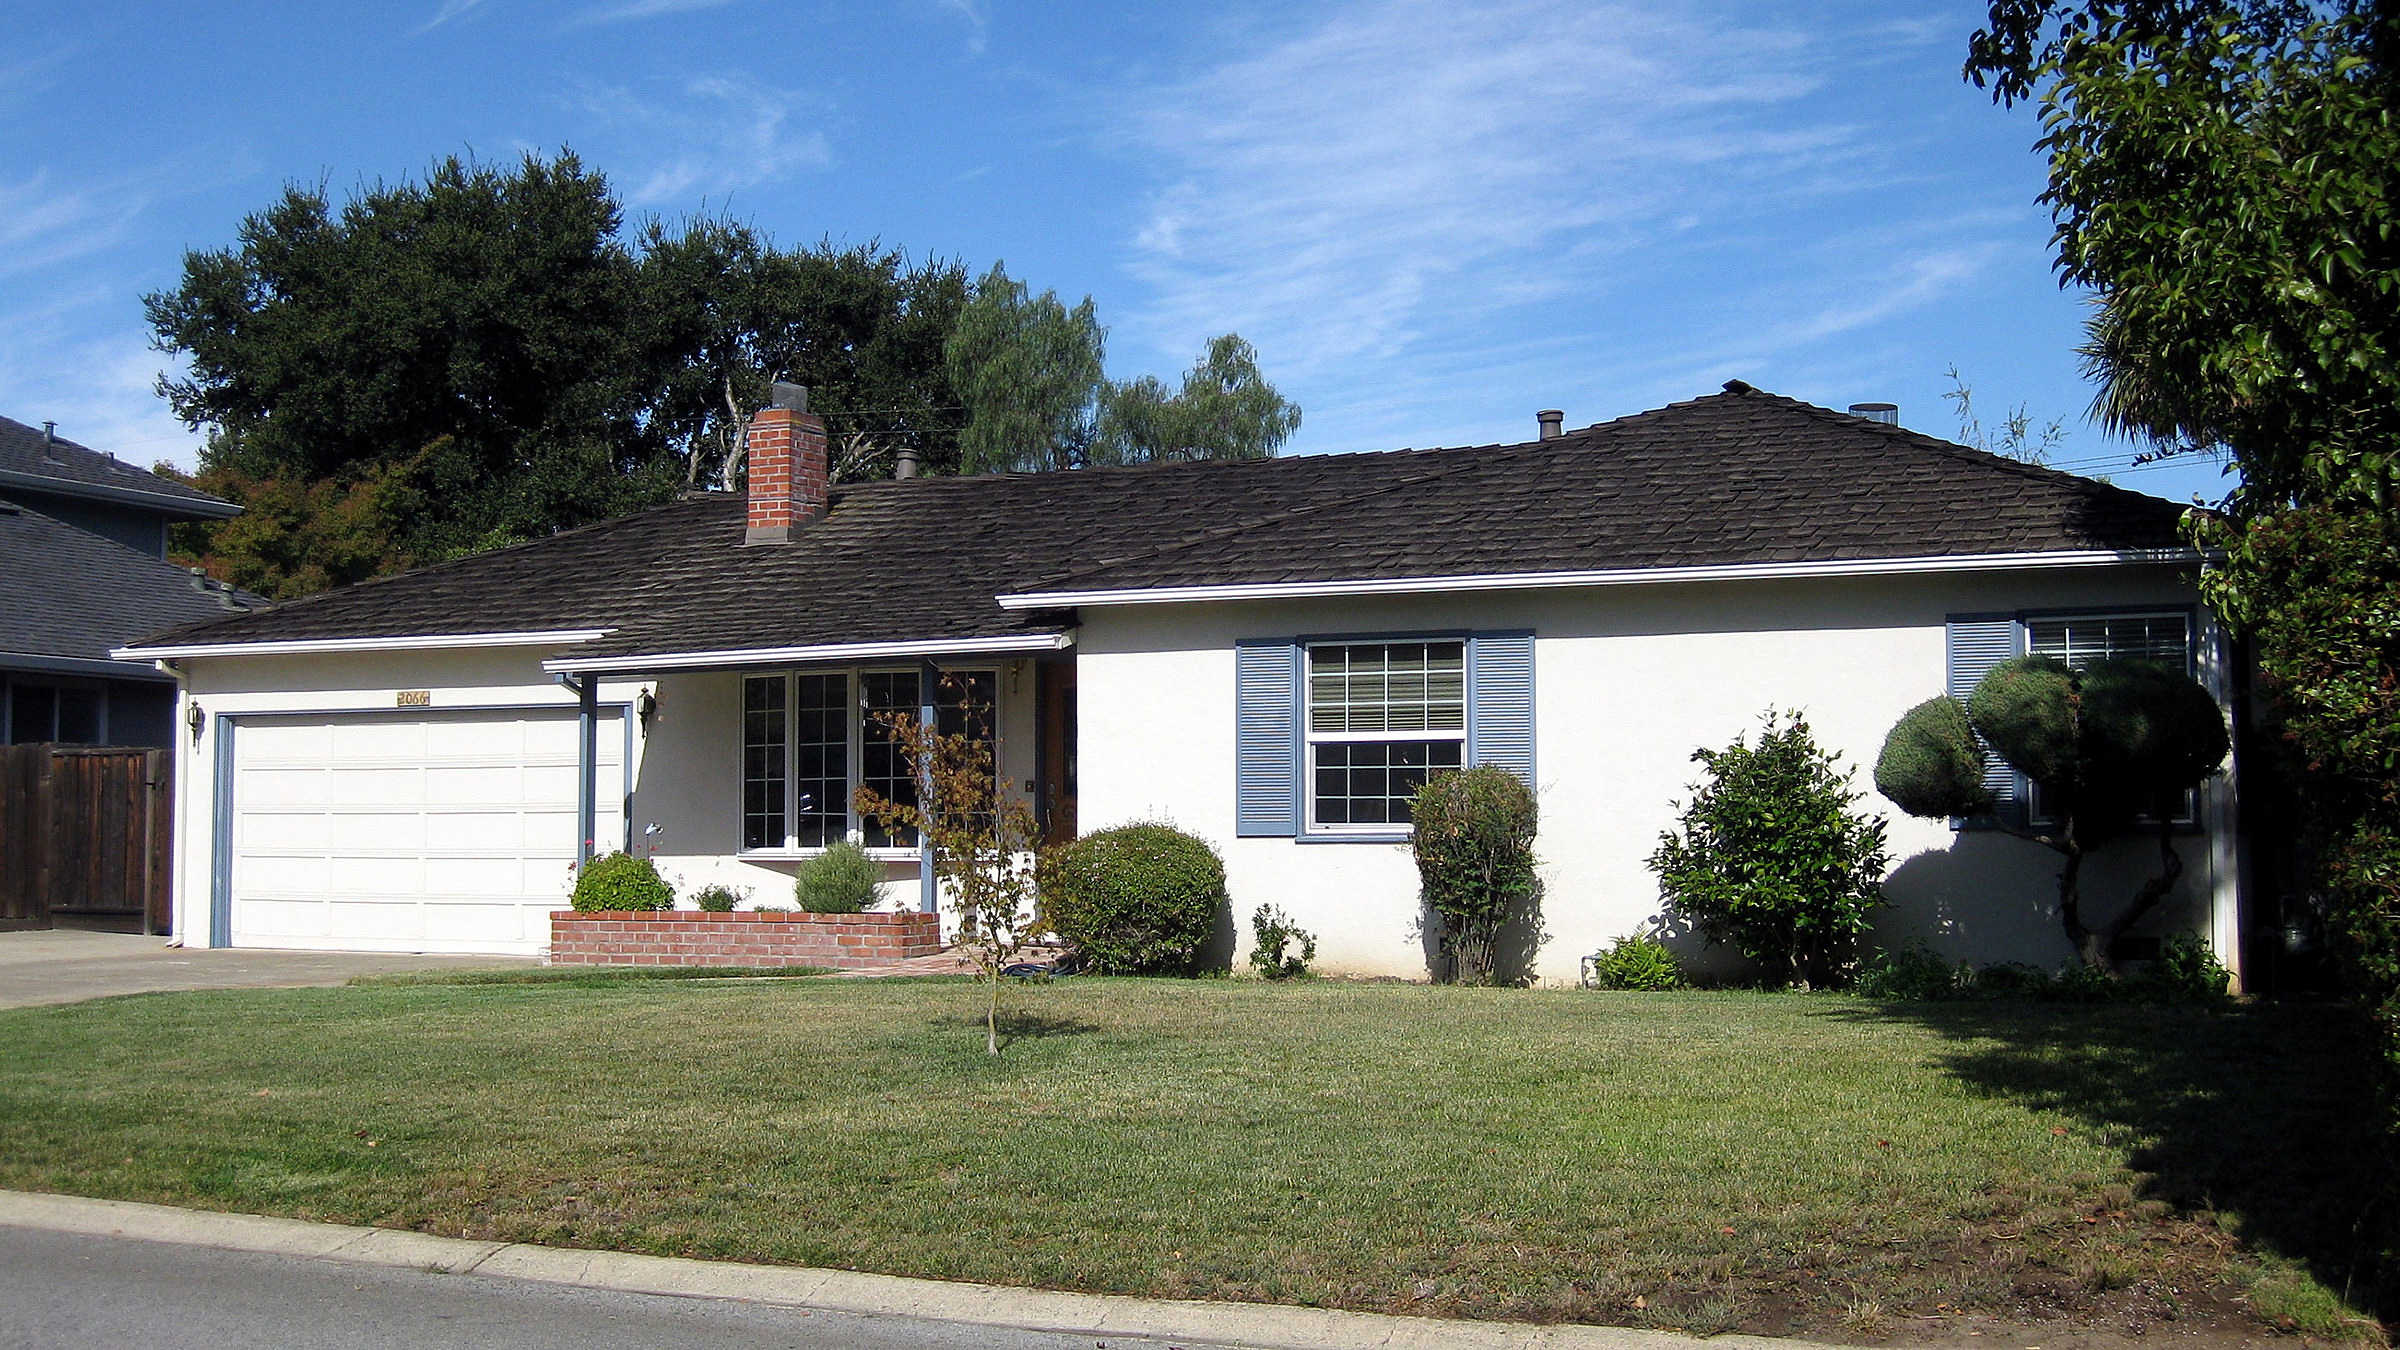 Steve Jobs childhood home in Los Altos, CA and garage where the first Apple computer was designed